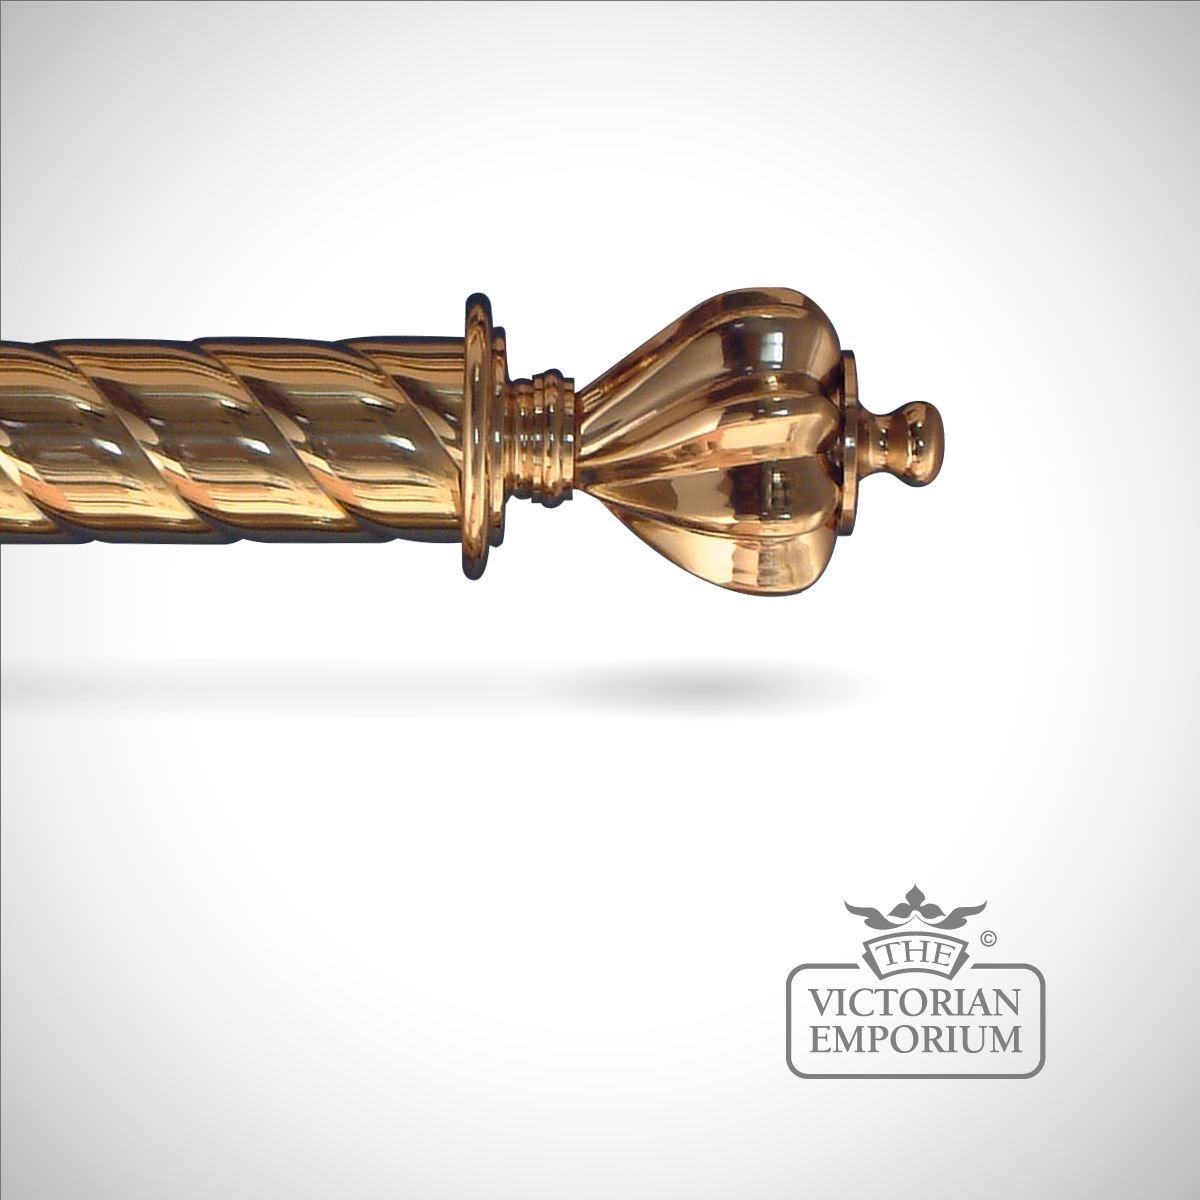 Reproduction victorian wallpaper guide the victorian emporium - Coronet Finial To Go With 38mm Or 51mm Brass Pole